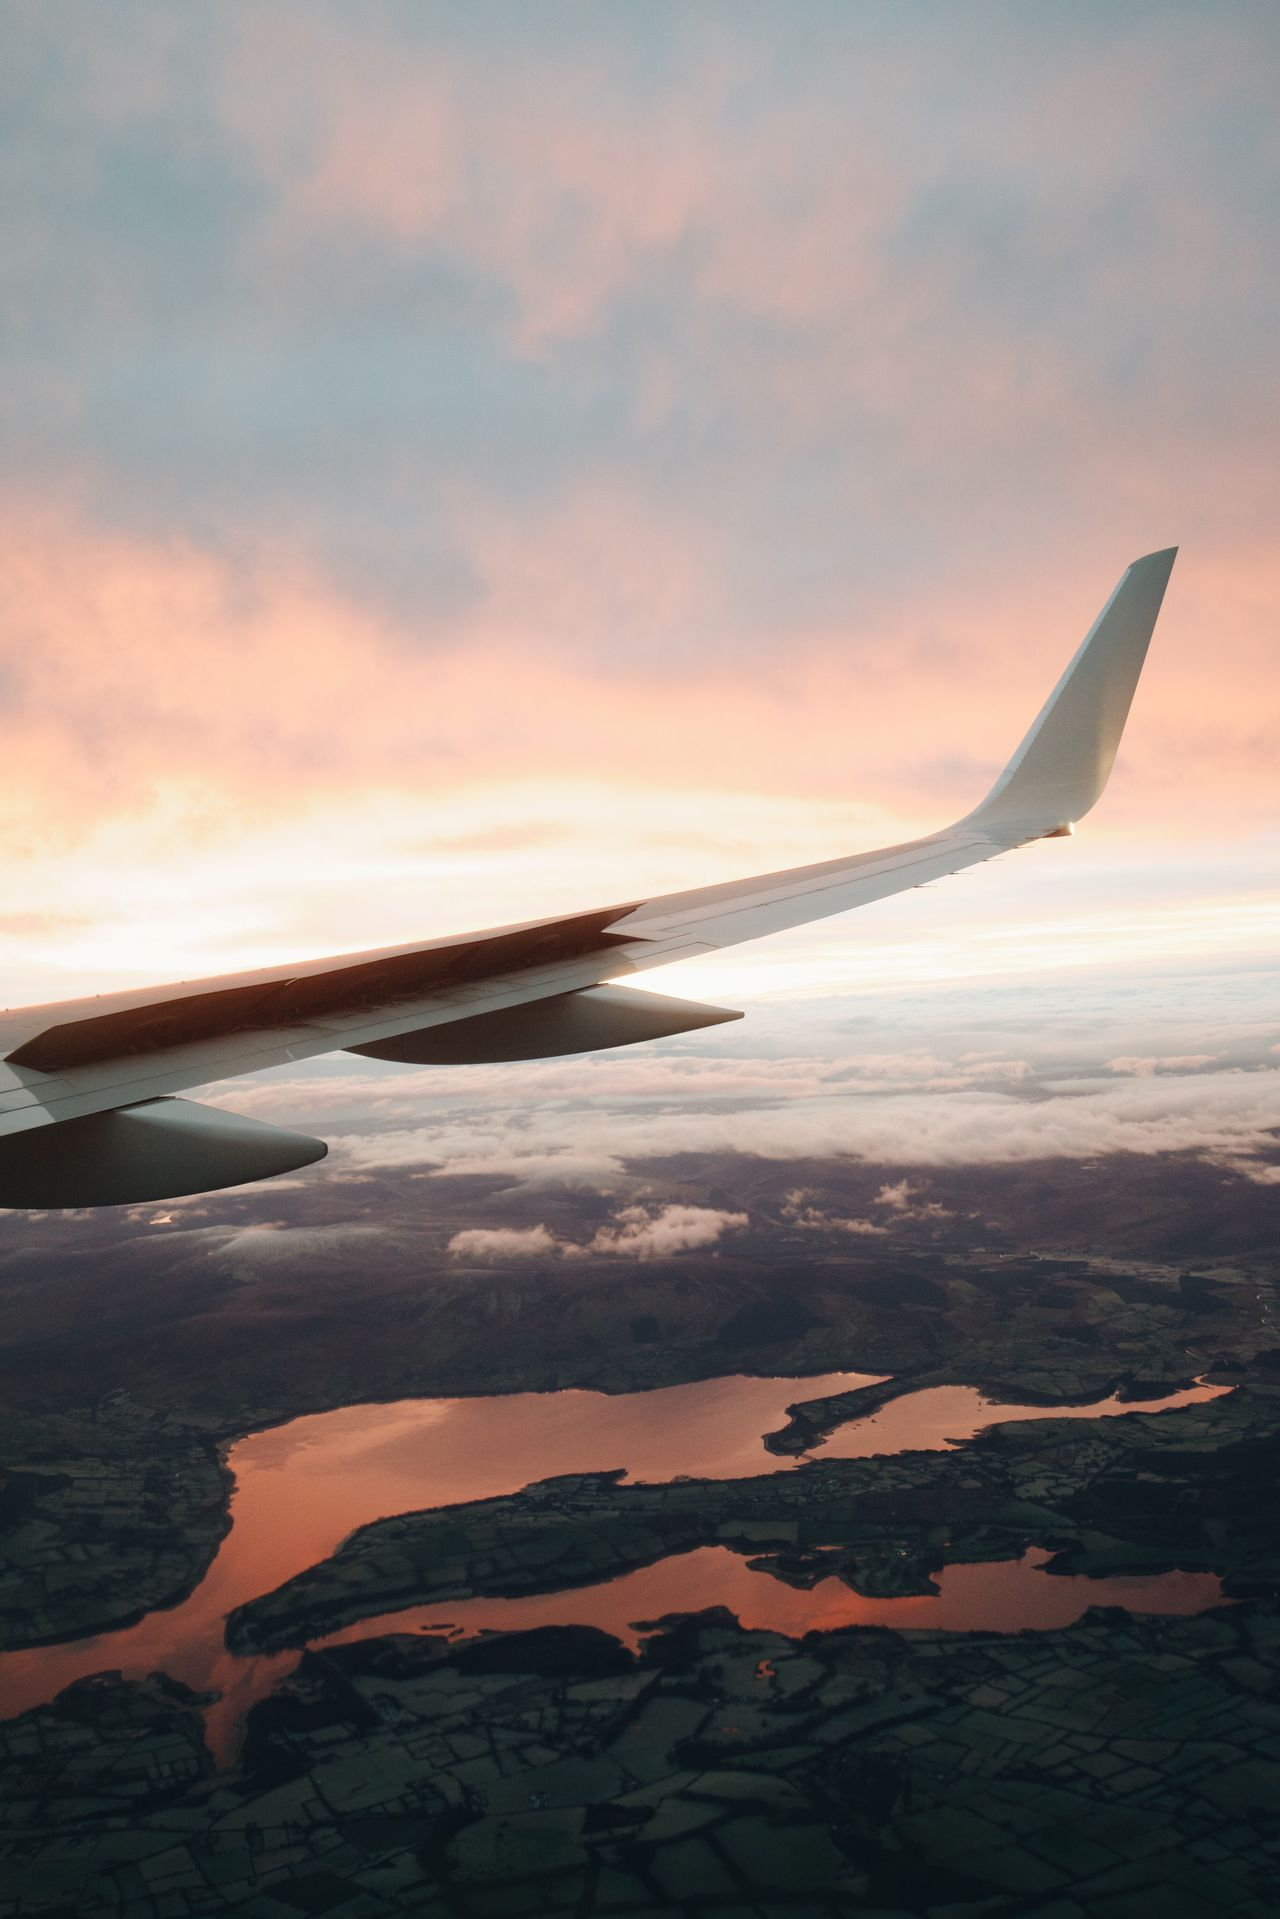 Beautiful stock photos of plane, airplane, sunset, flying, travel